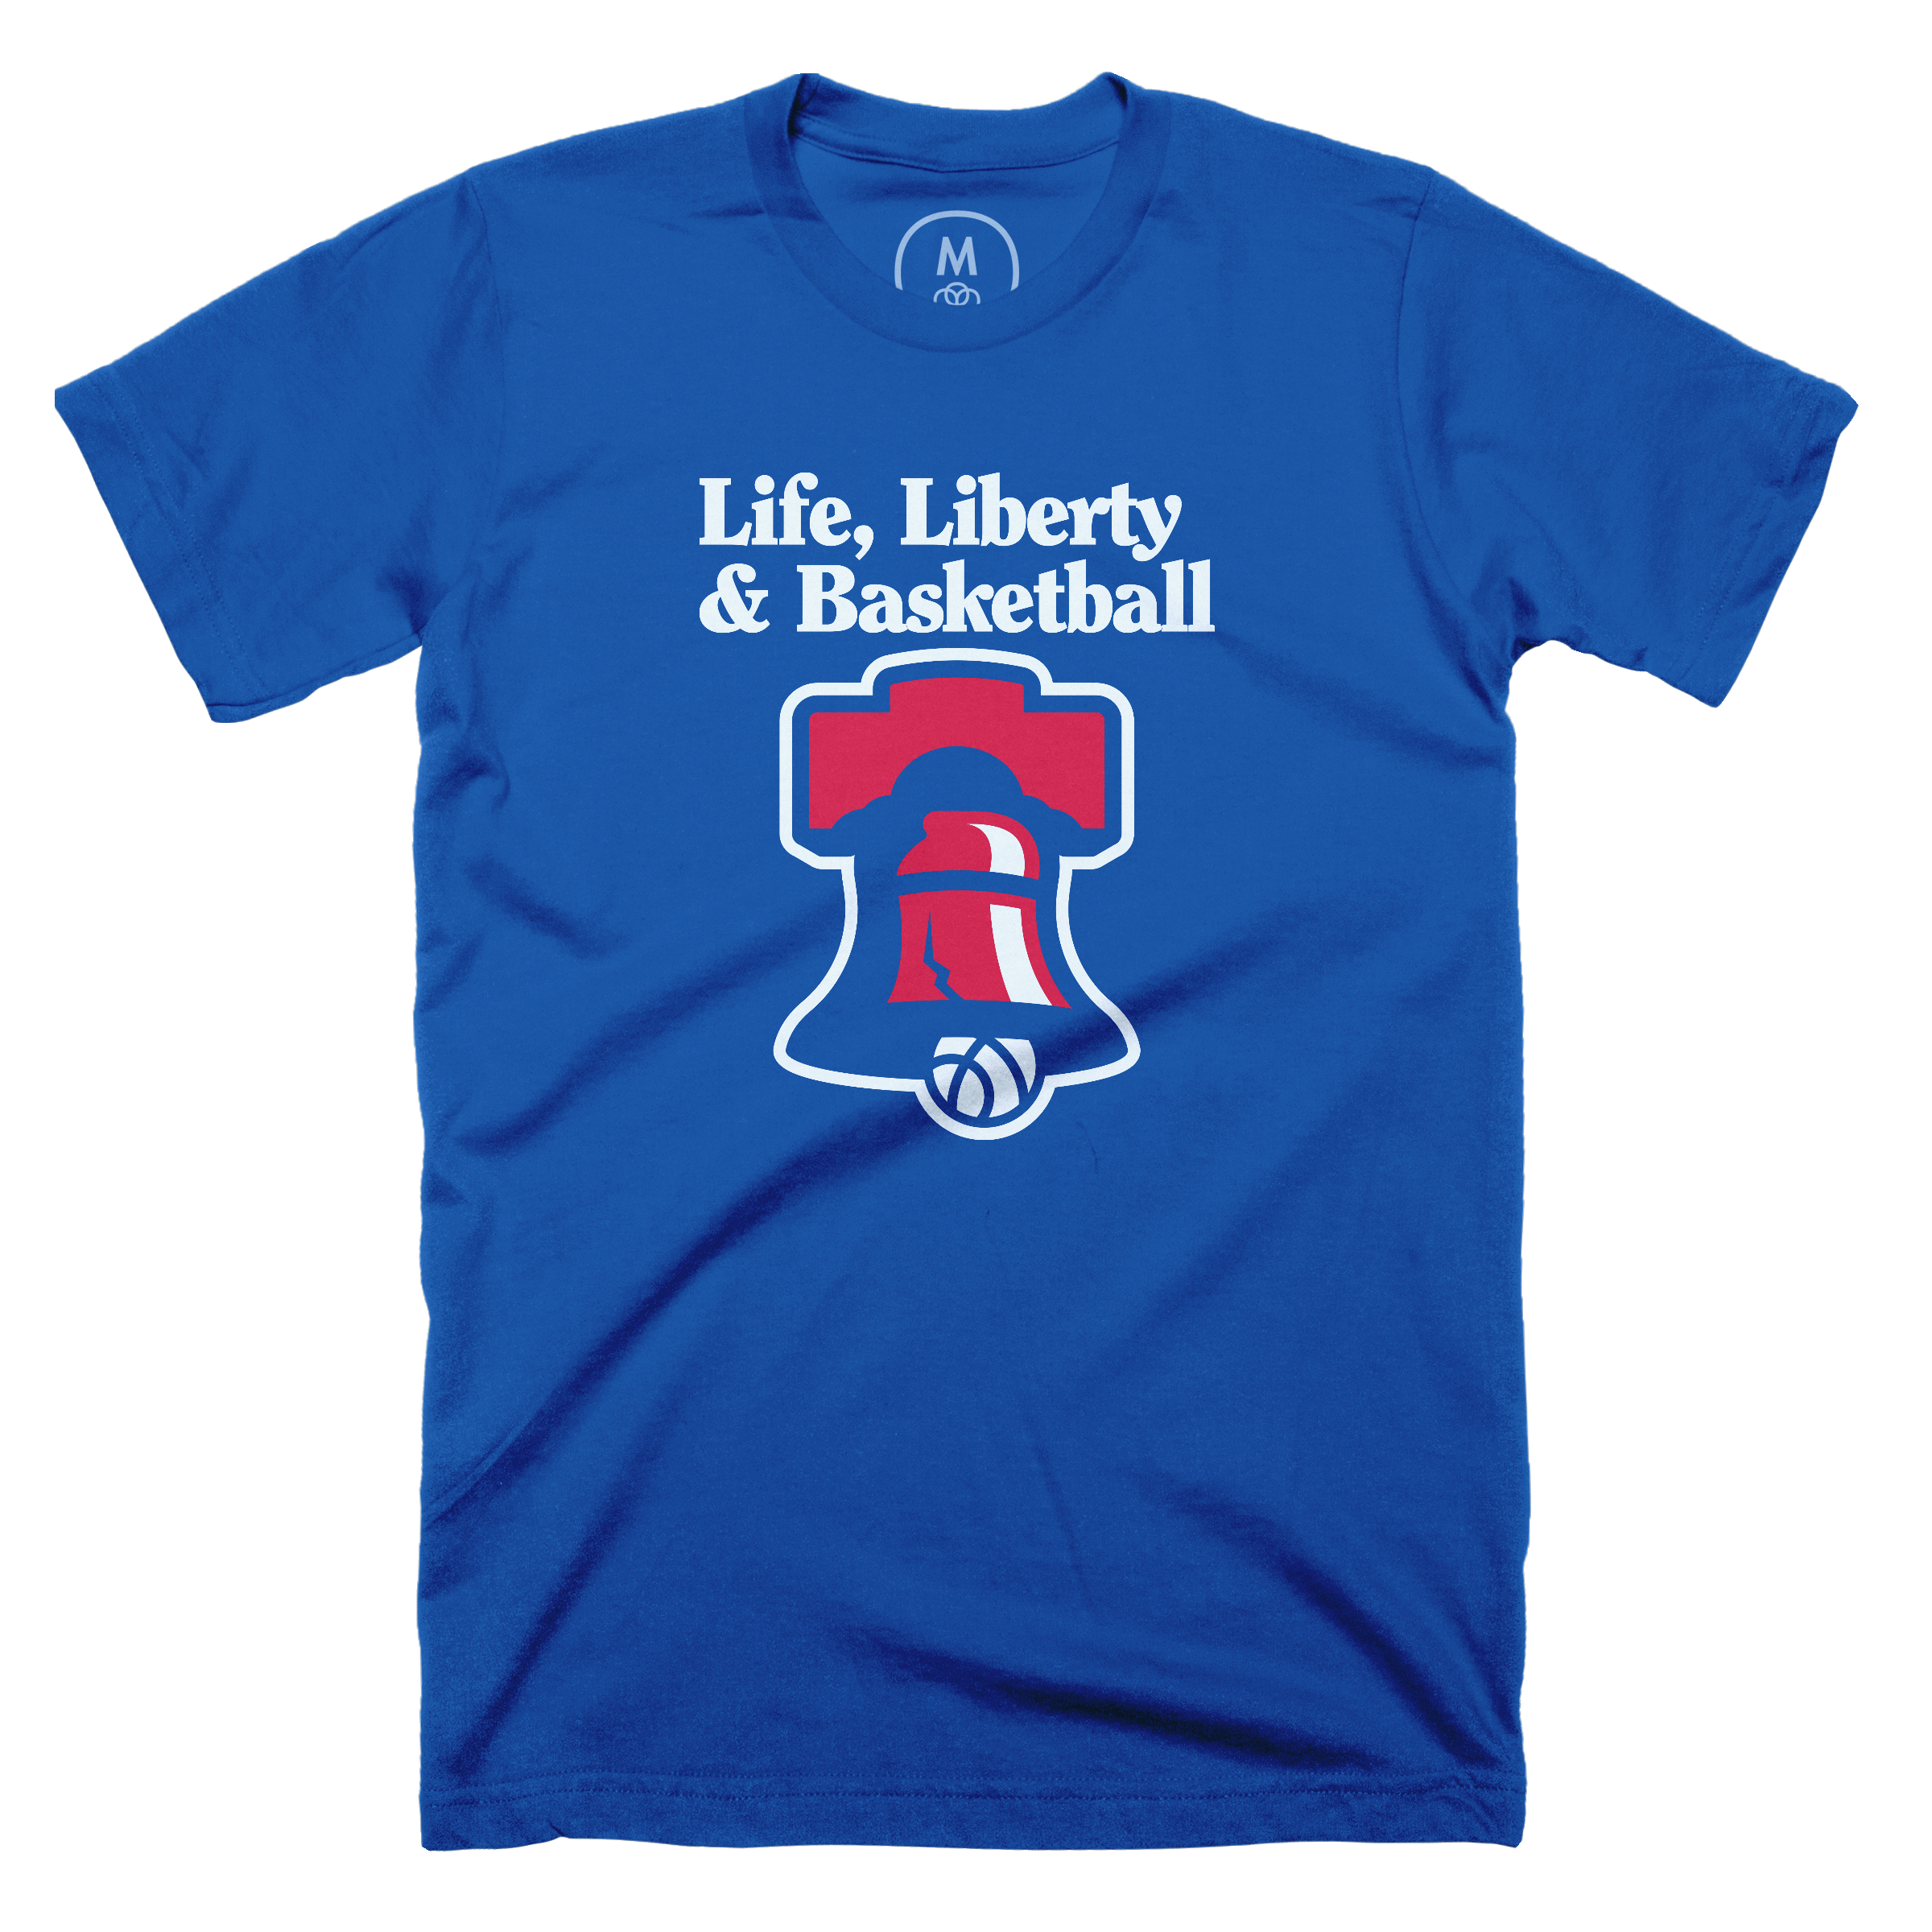 Life, Liberty & Basketball